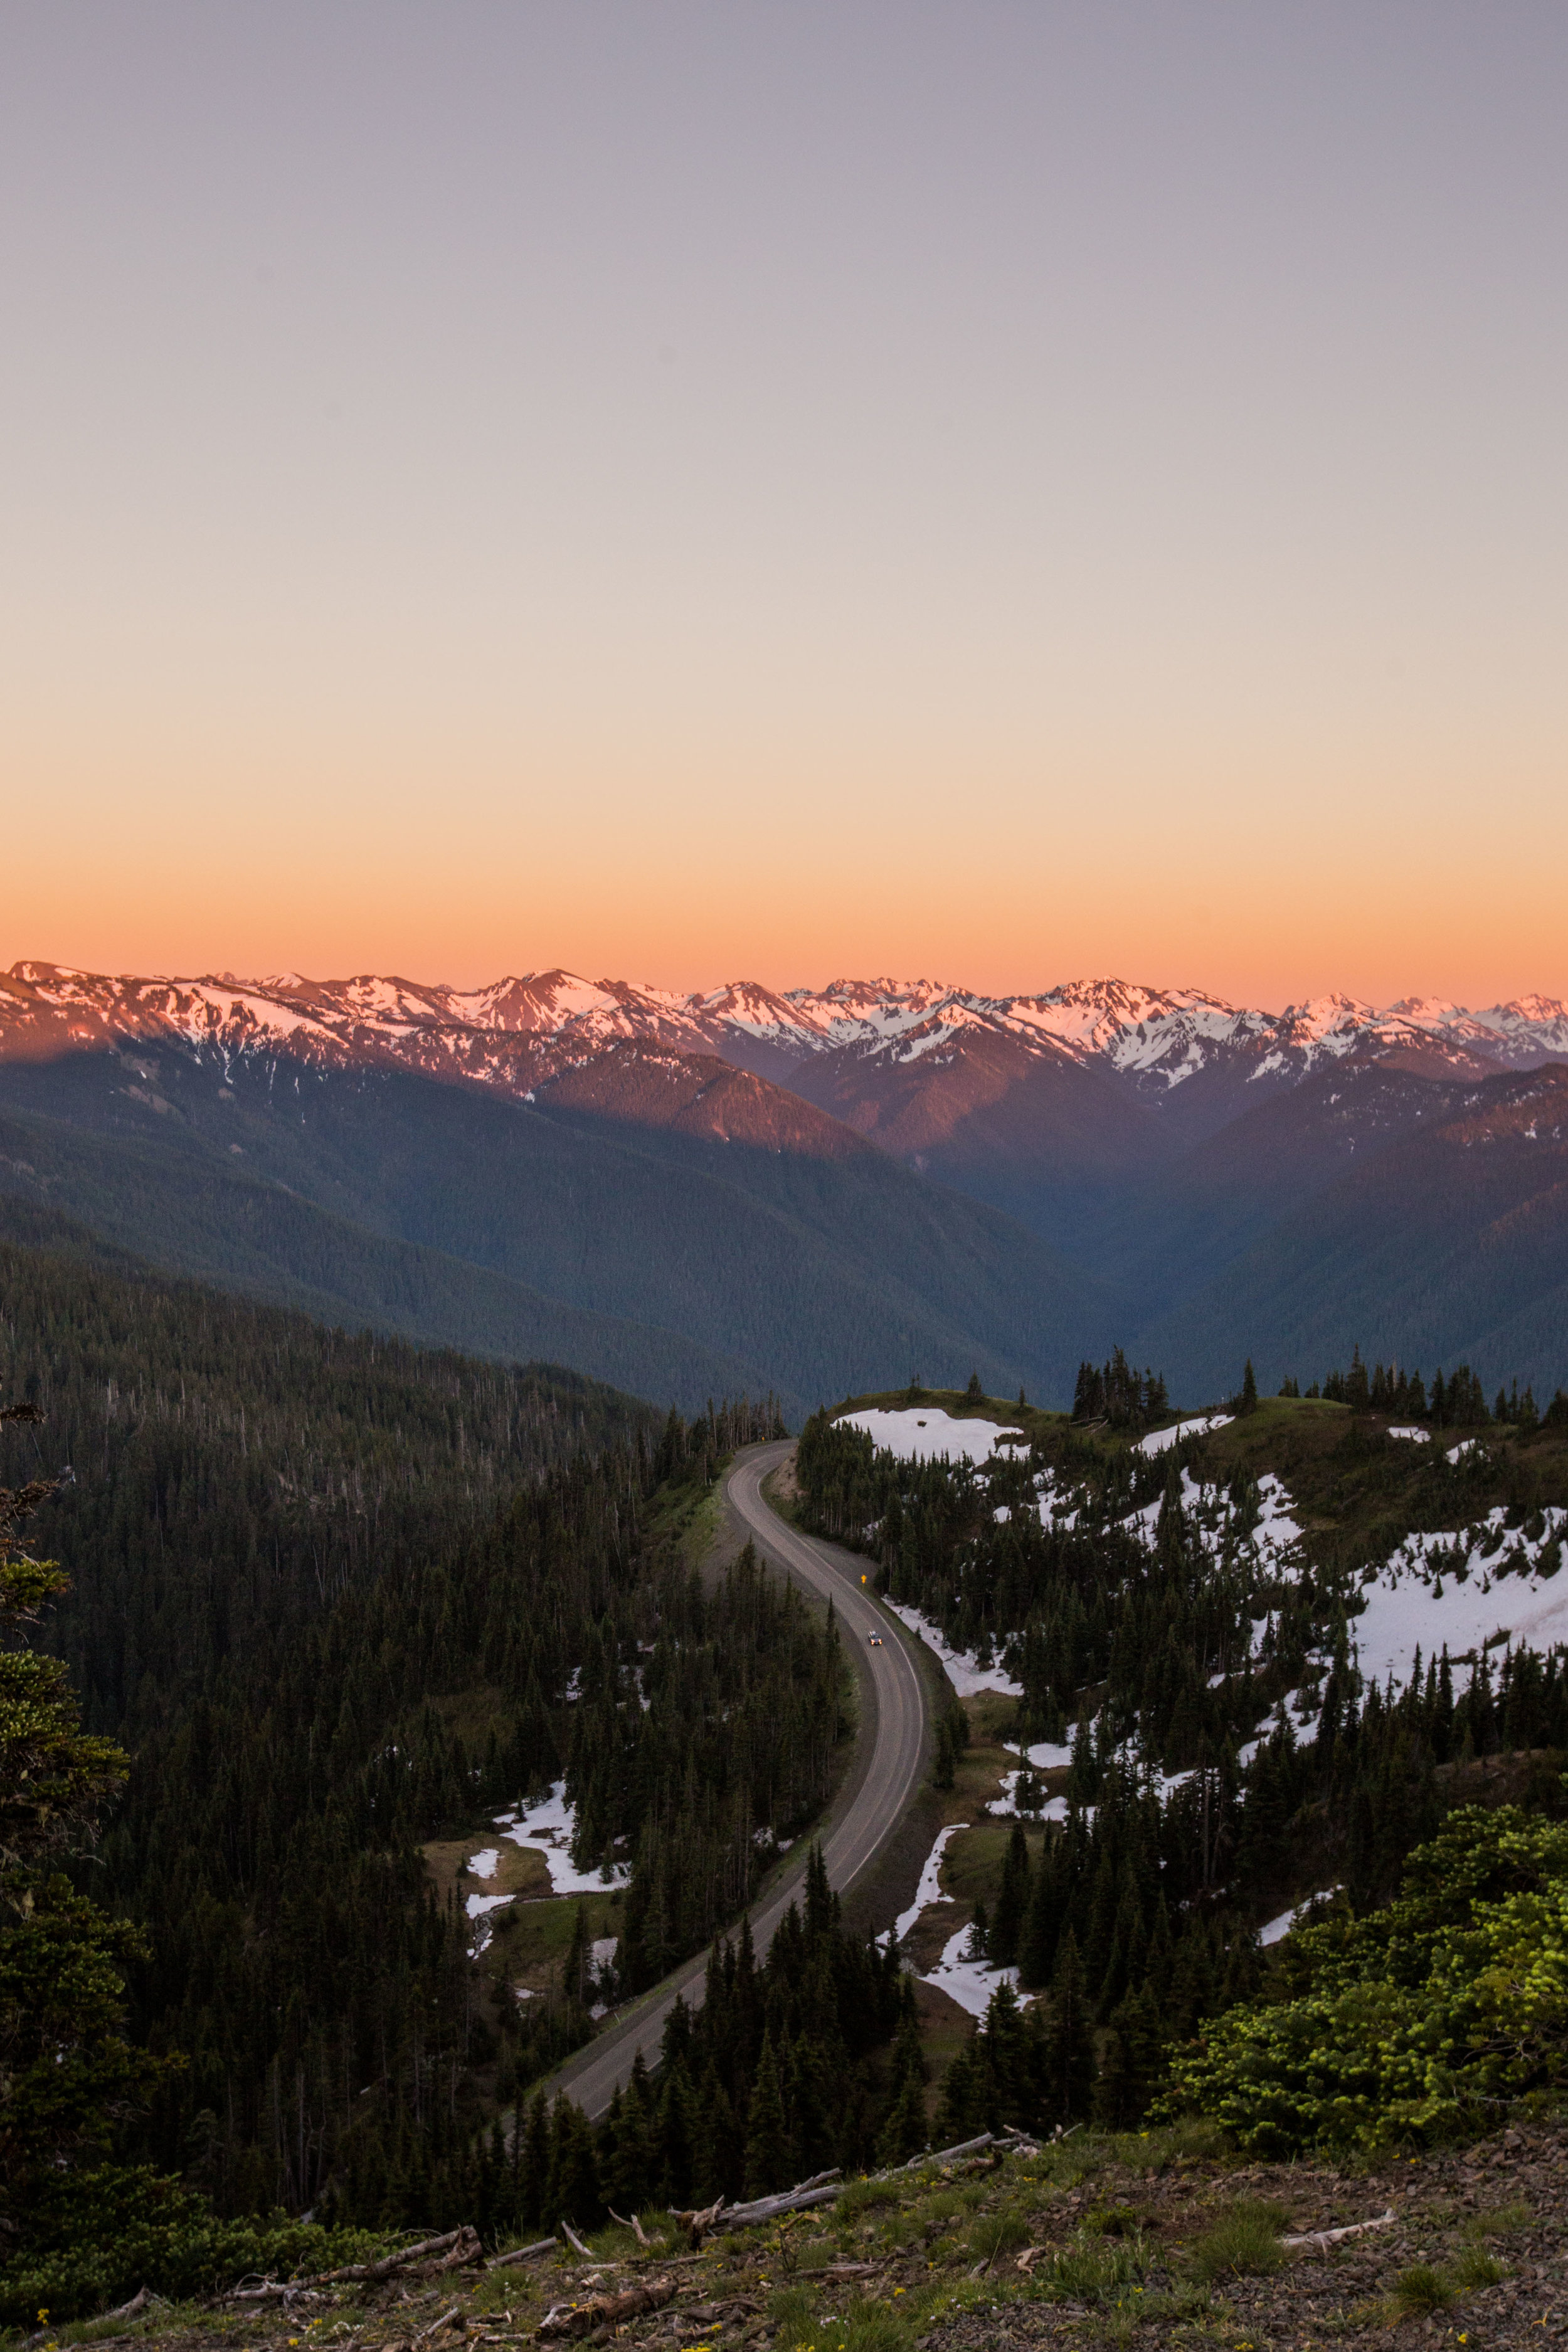 Hurricane Ridge at Sunset - Photo by Brad Oz